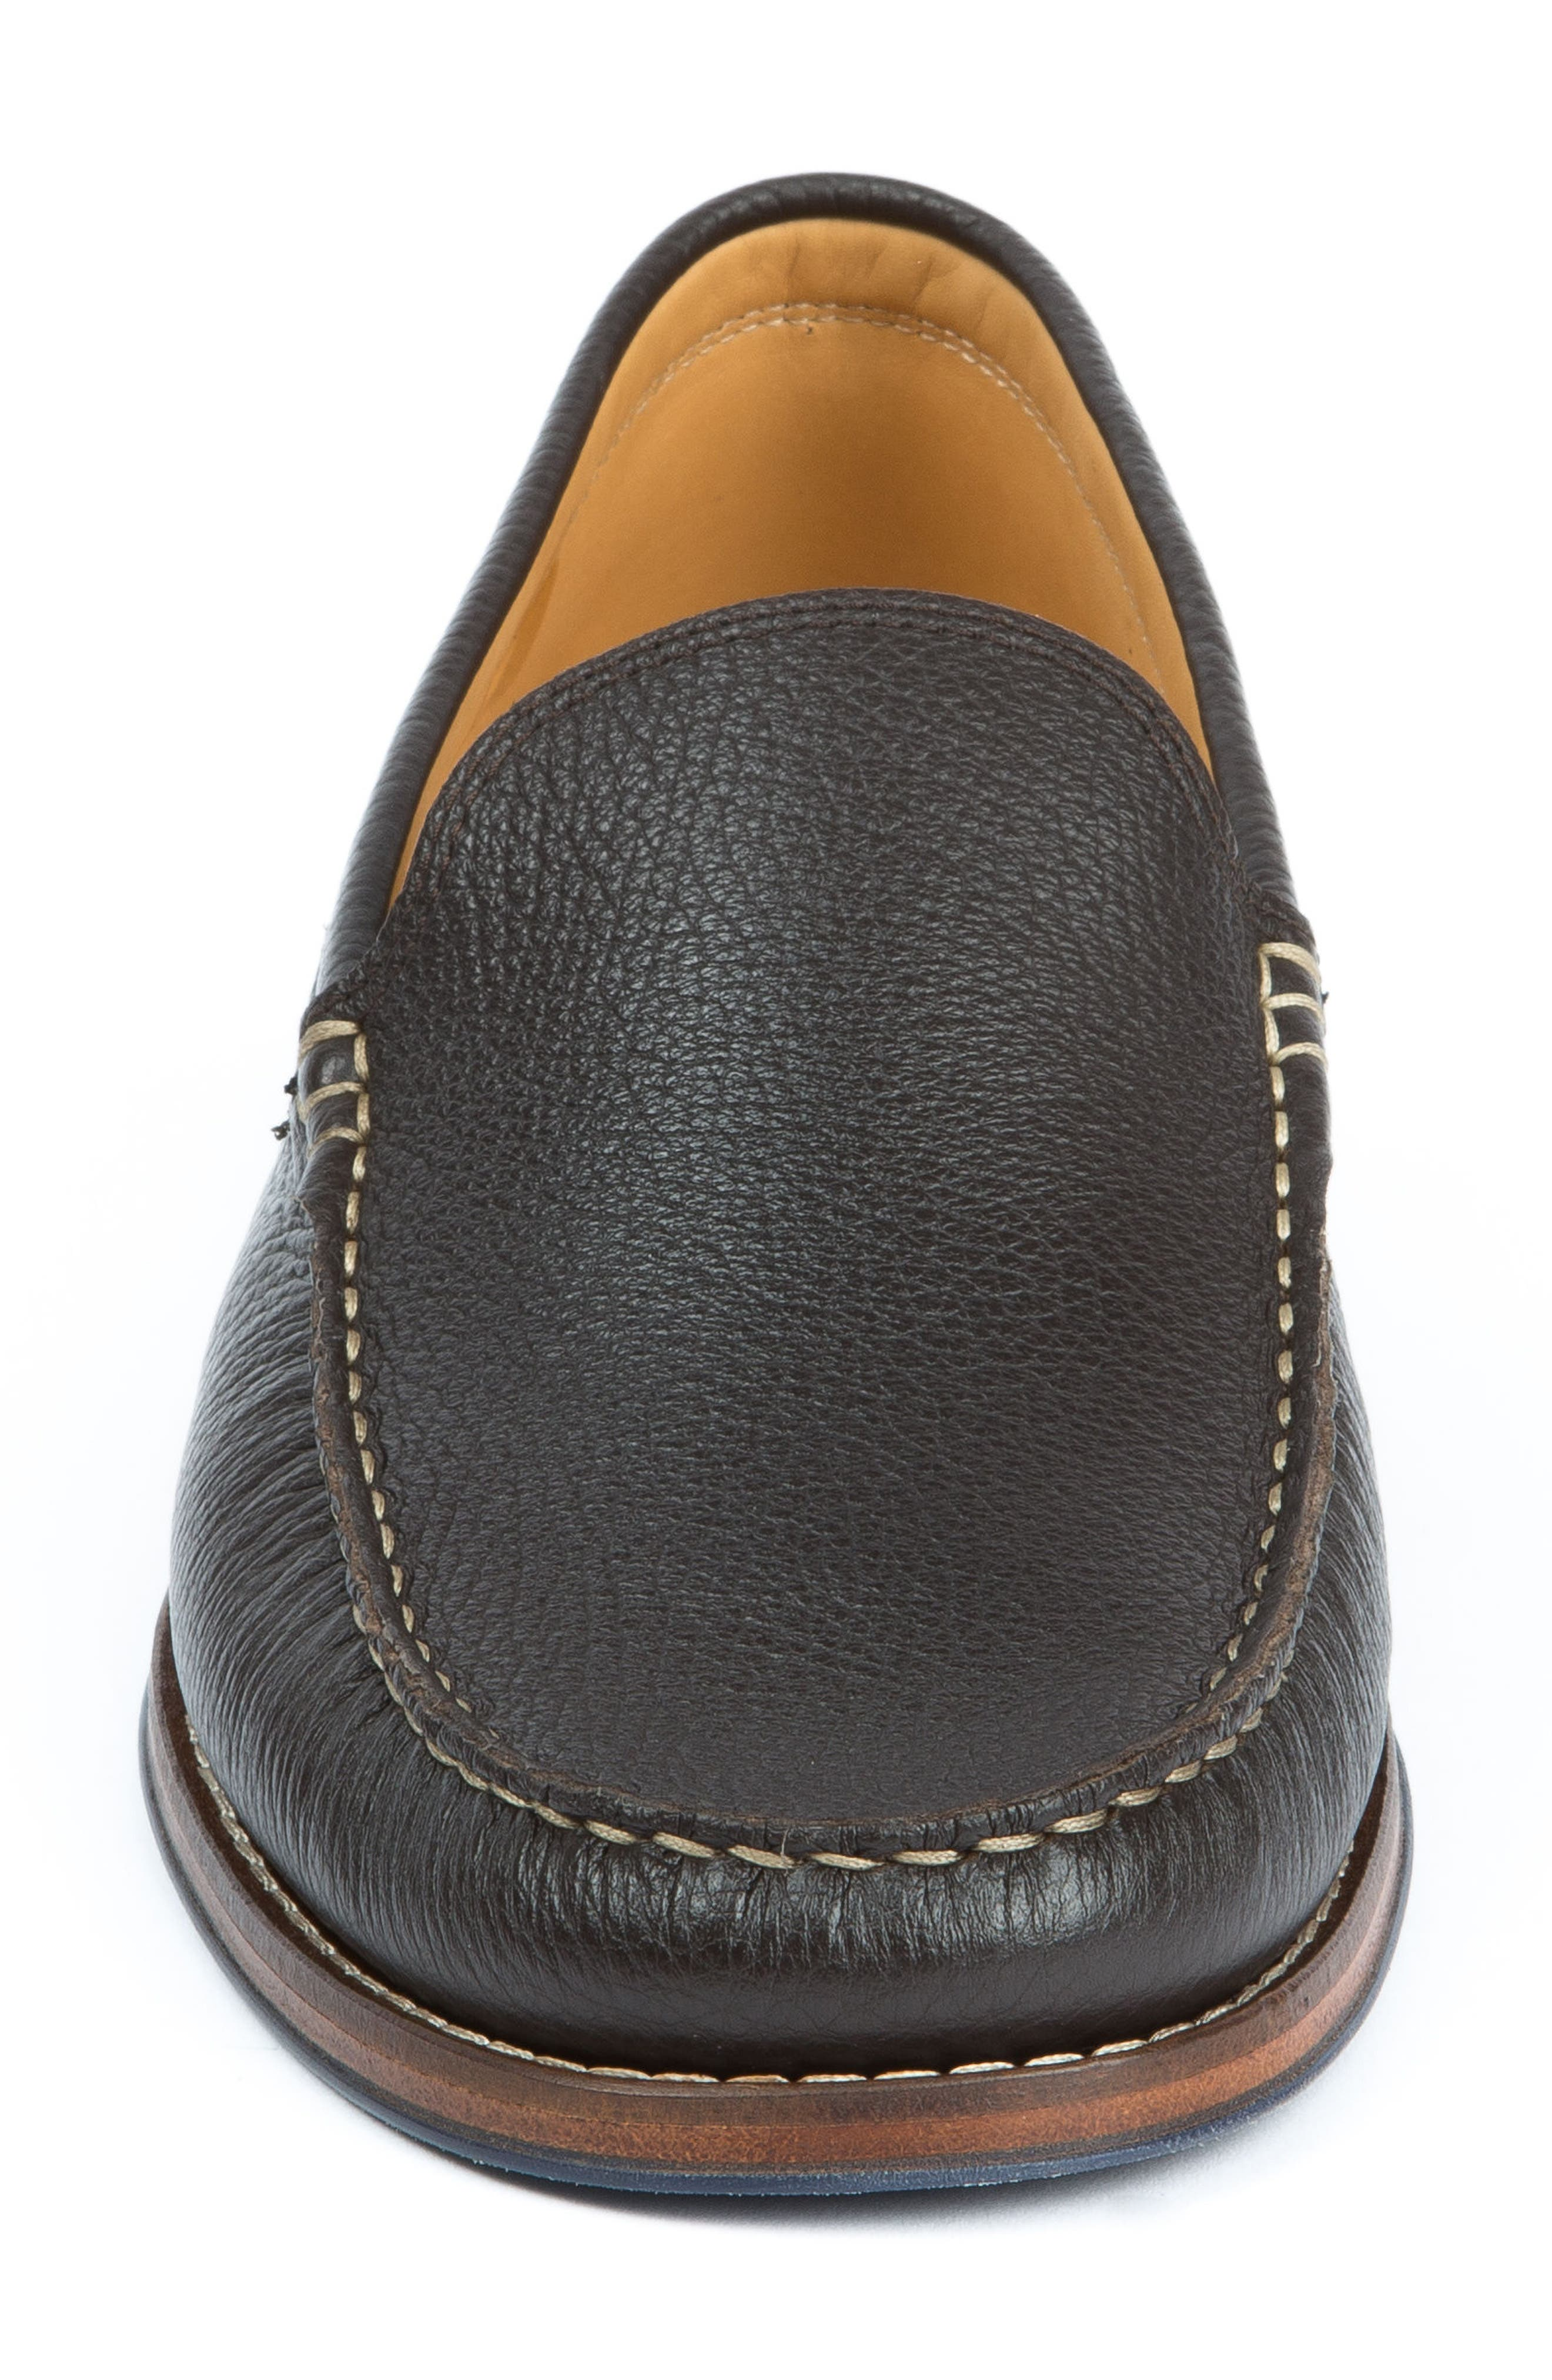 Alternate Image 4  - Austen Heller Caldwells Loafer (Men)